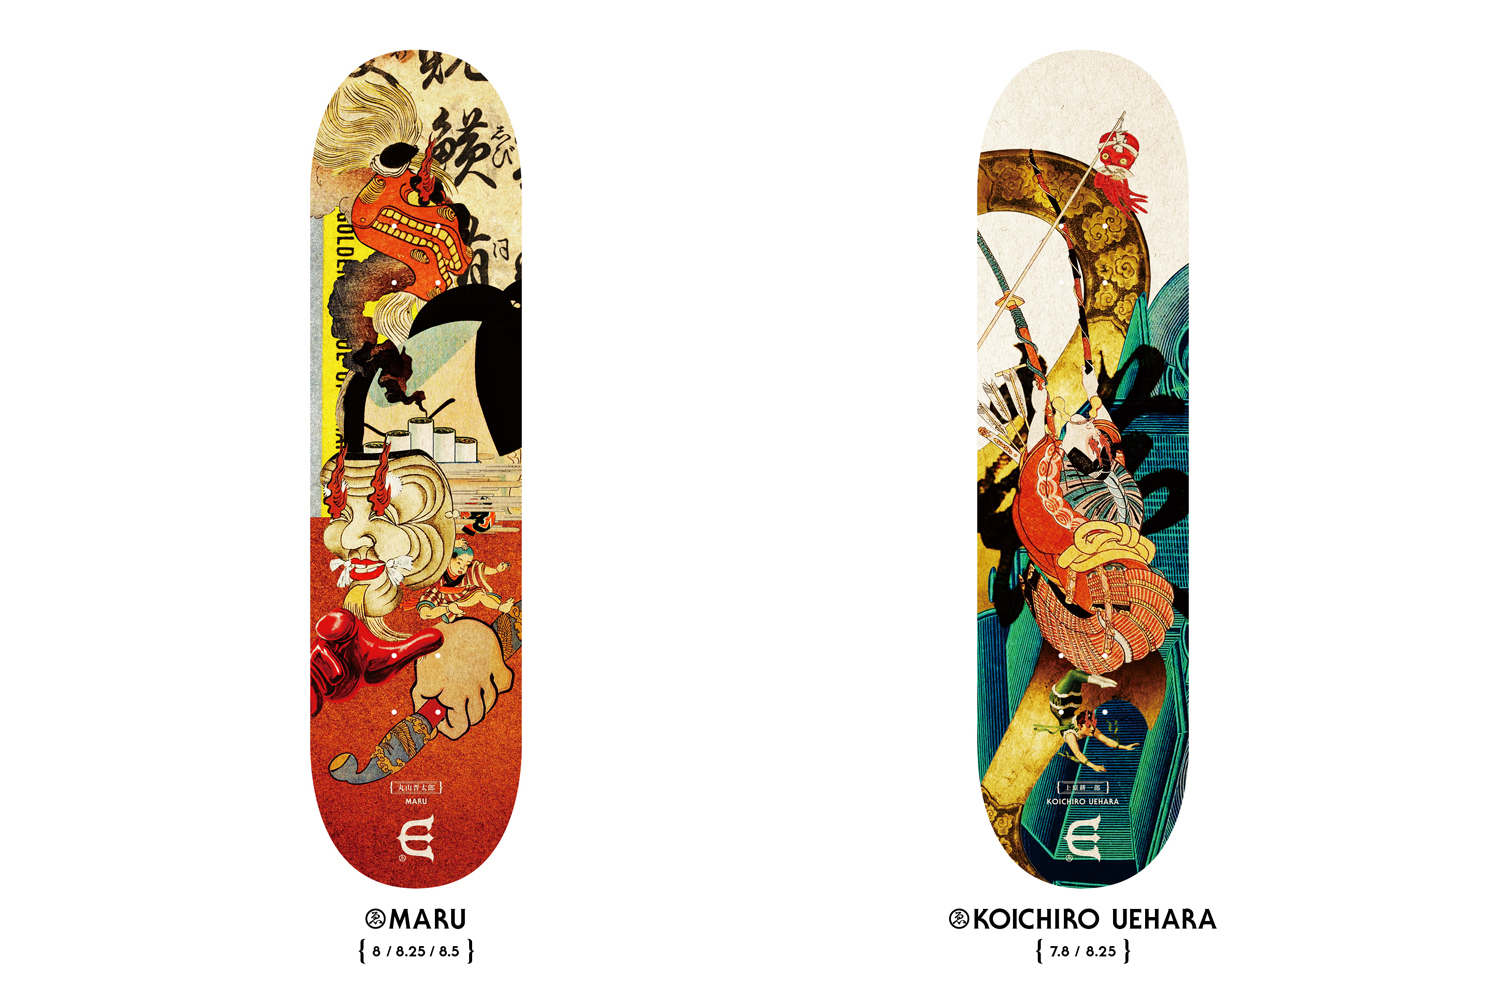 Evisen Skateboards Essence Board Series Japanese Designs - 3750997